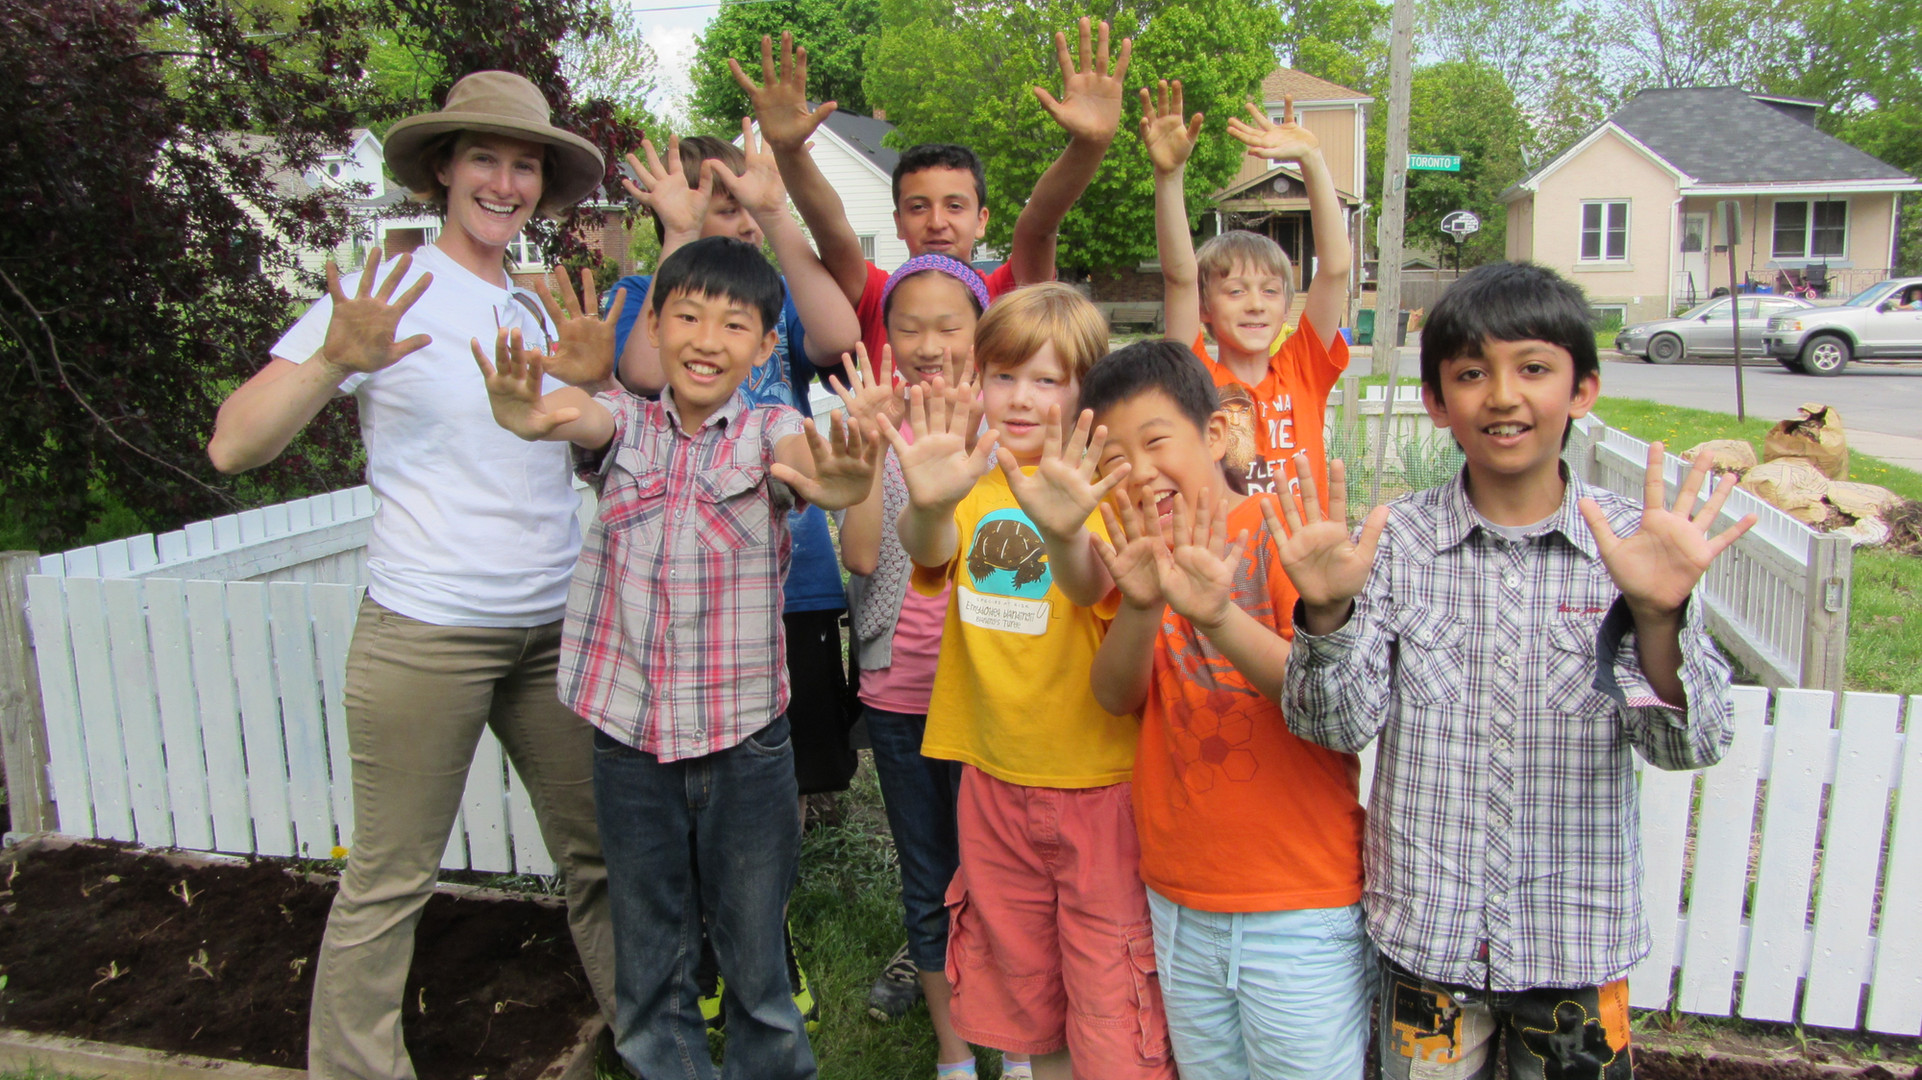 890 elementary students learned through our school garden program in 2019-20